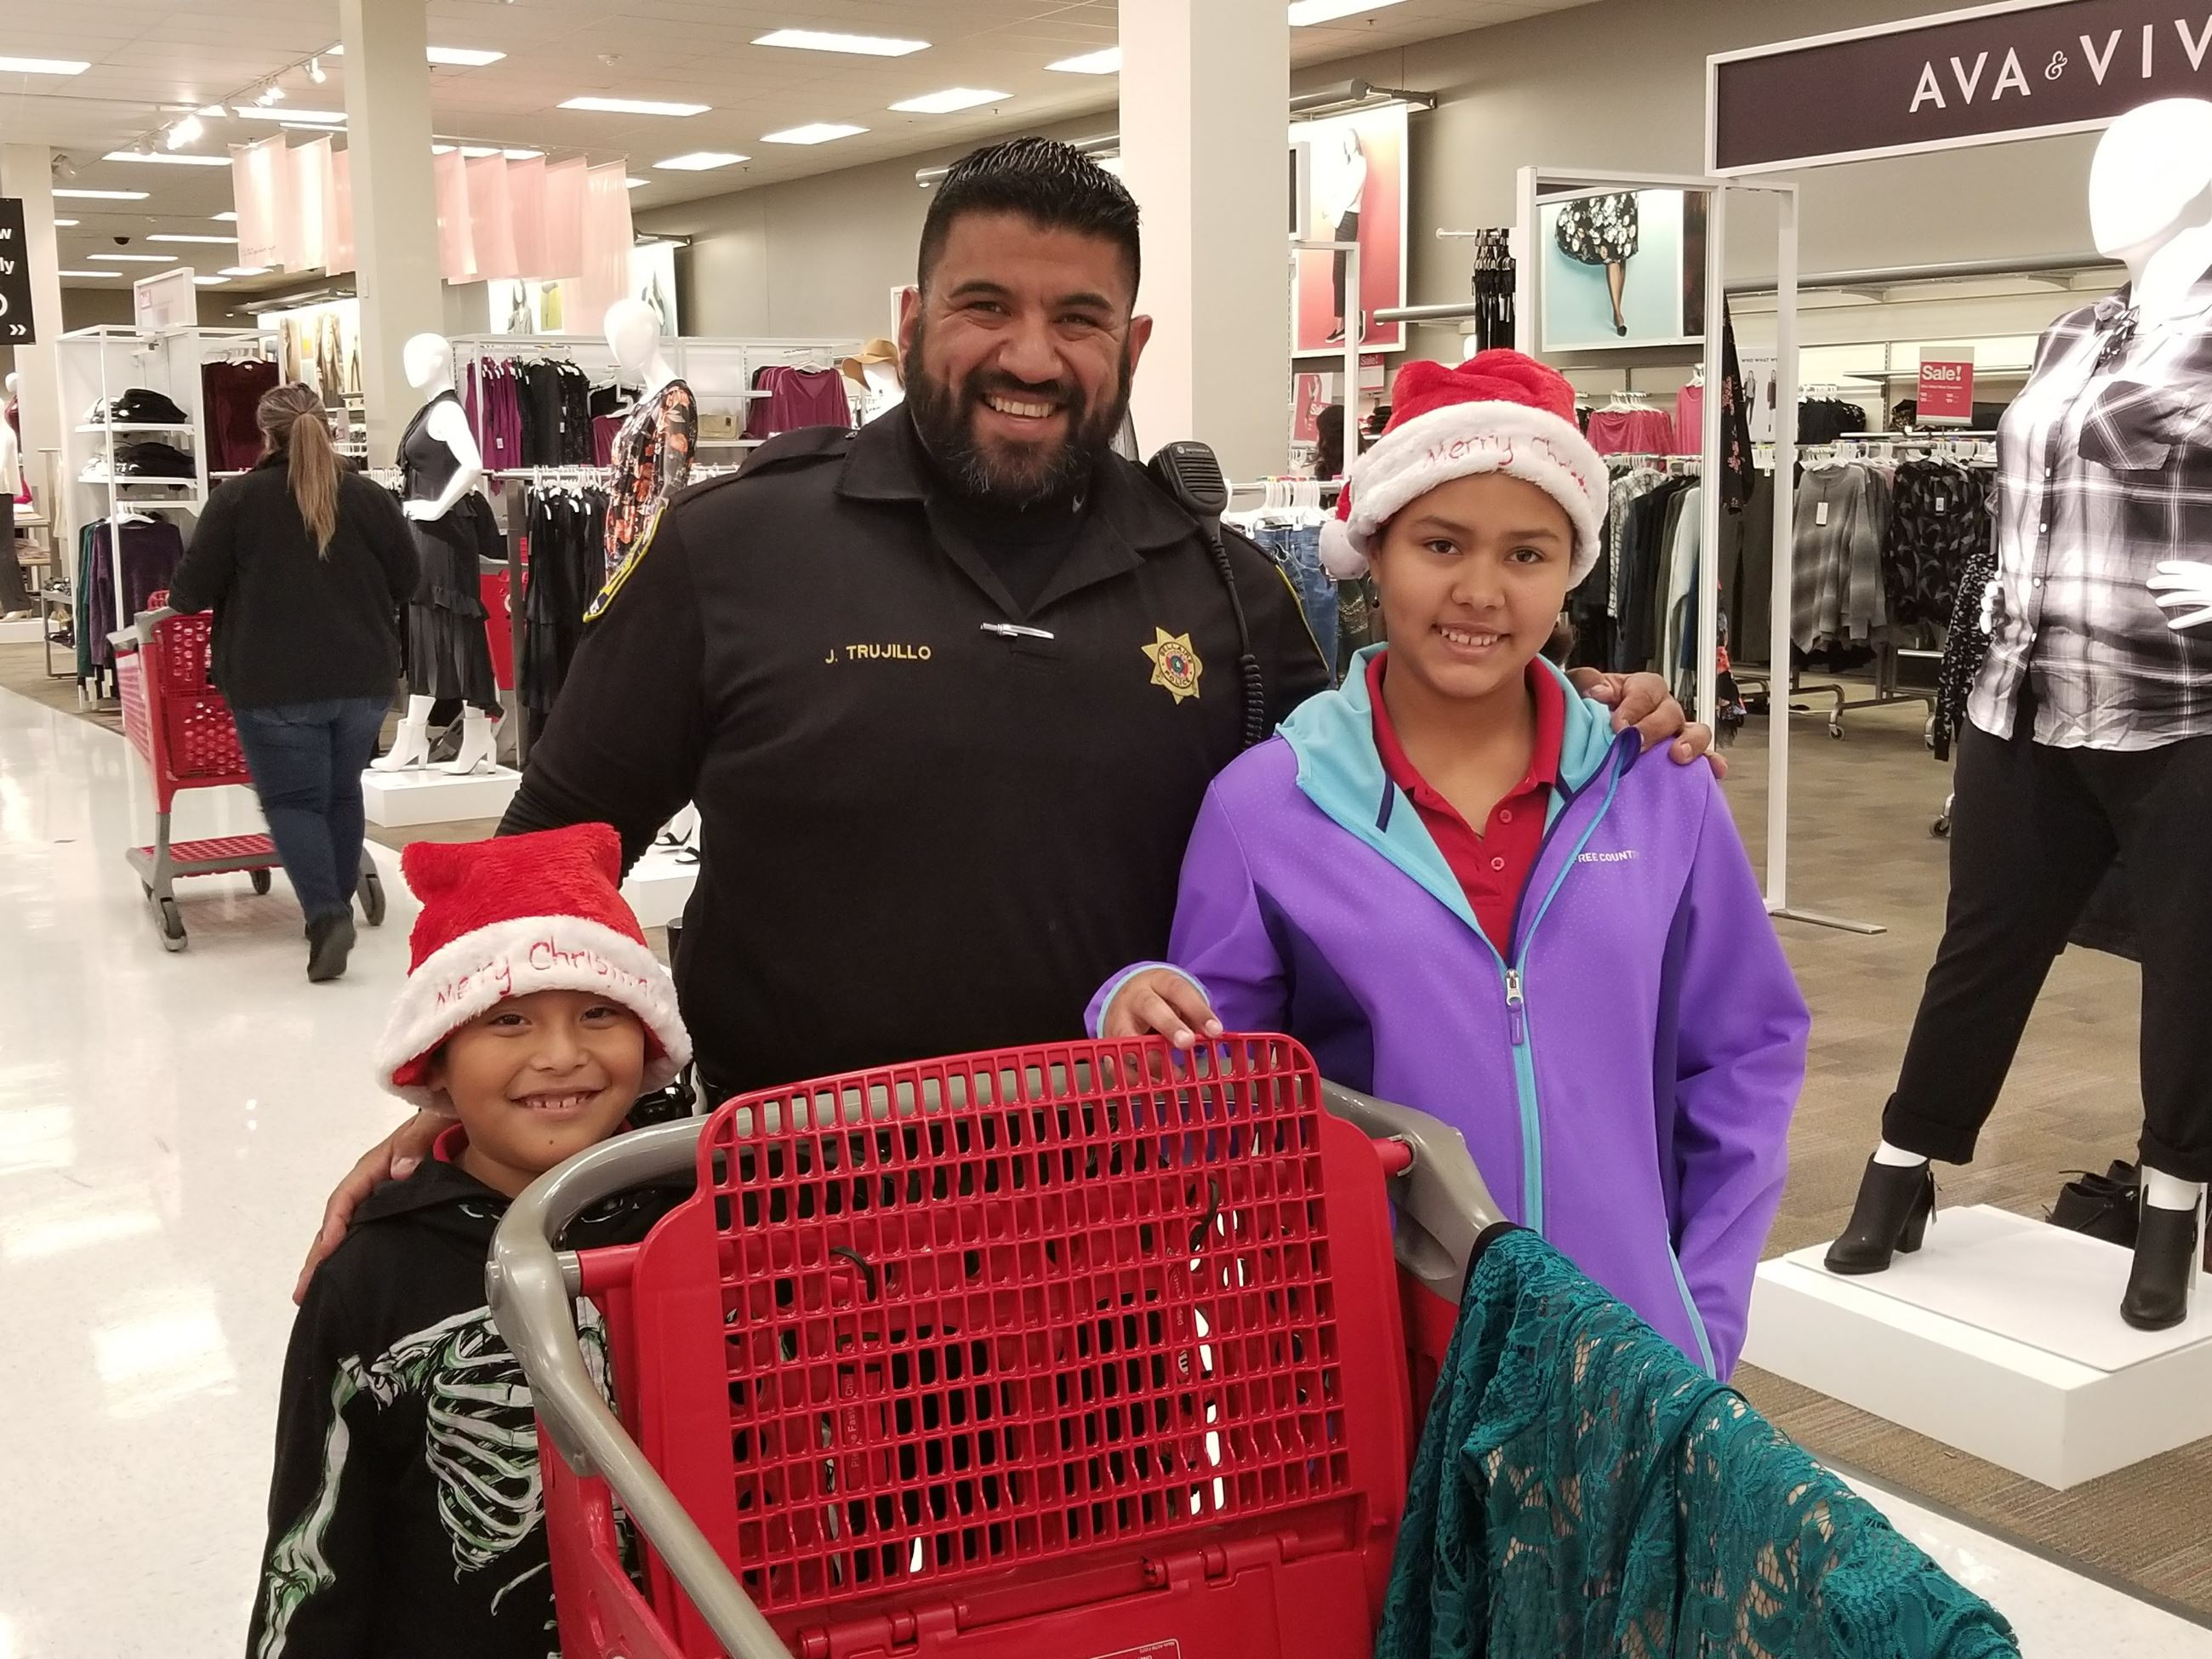 Two children and Officer Trujillo shopping at Target